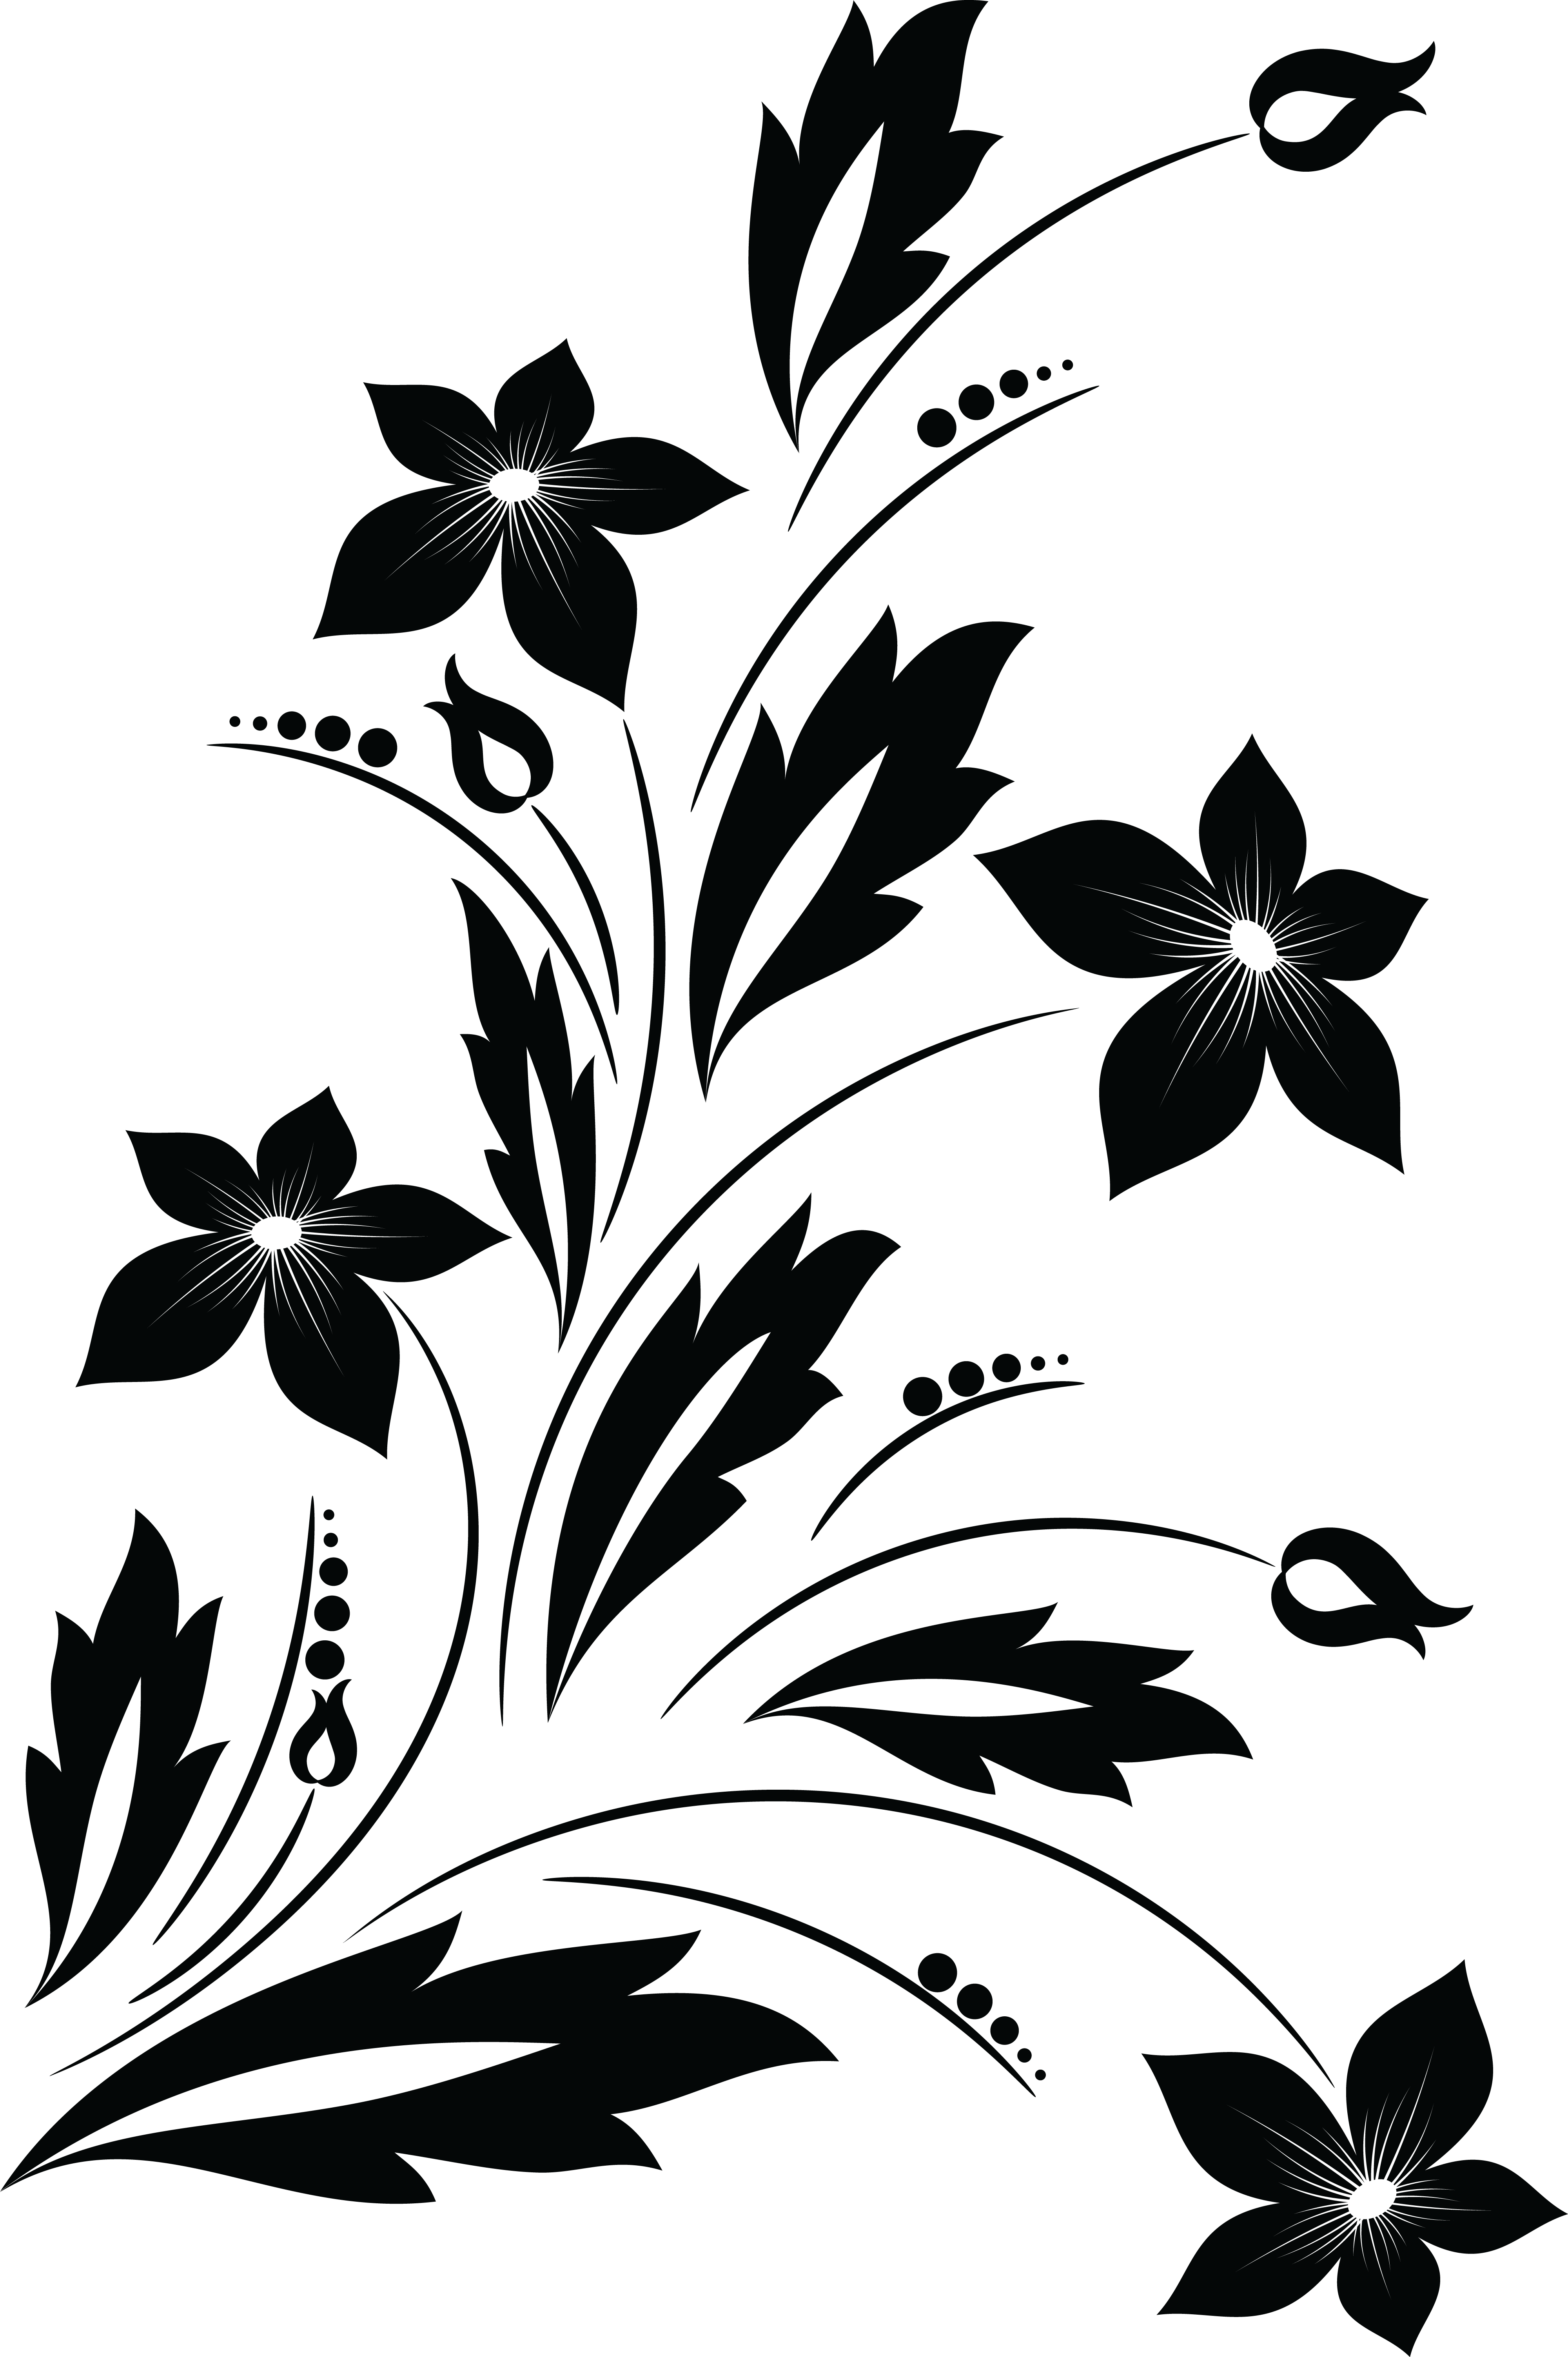 Free Clipart Of A Black And White Floral Vine Design Element.